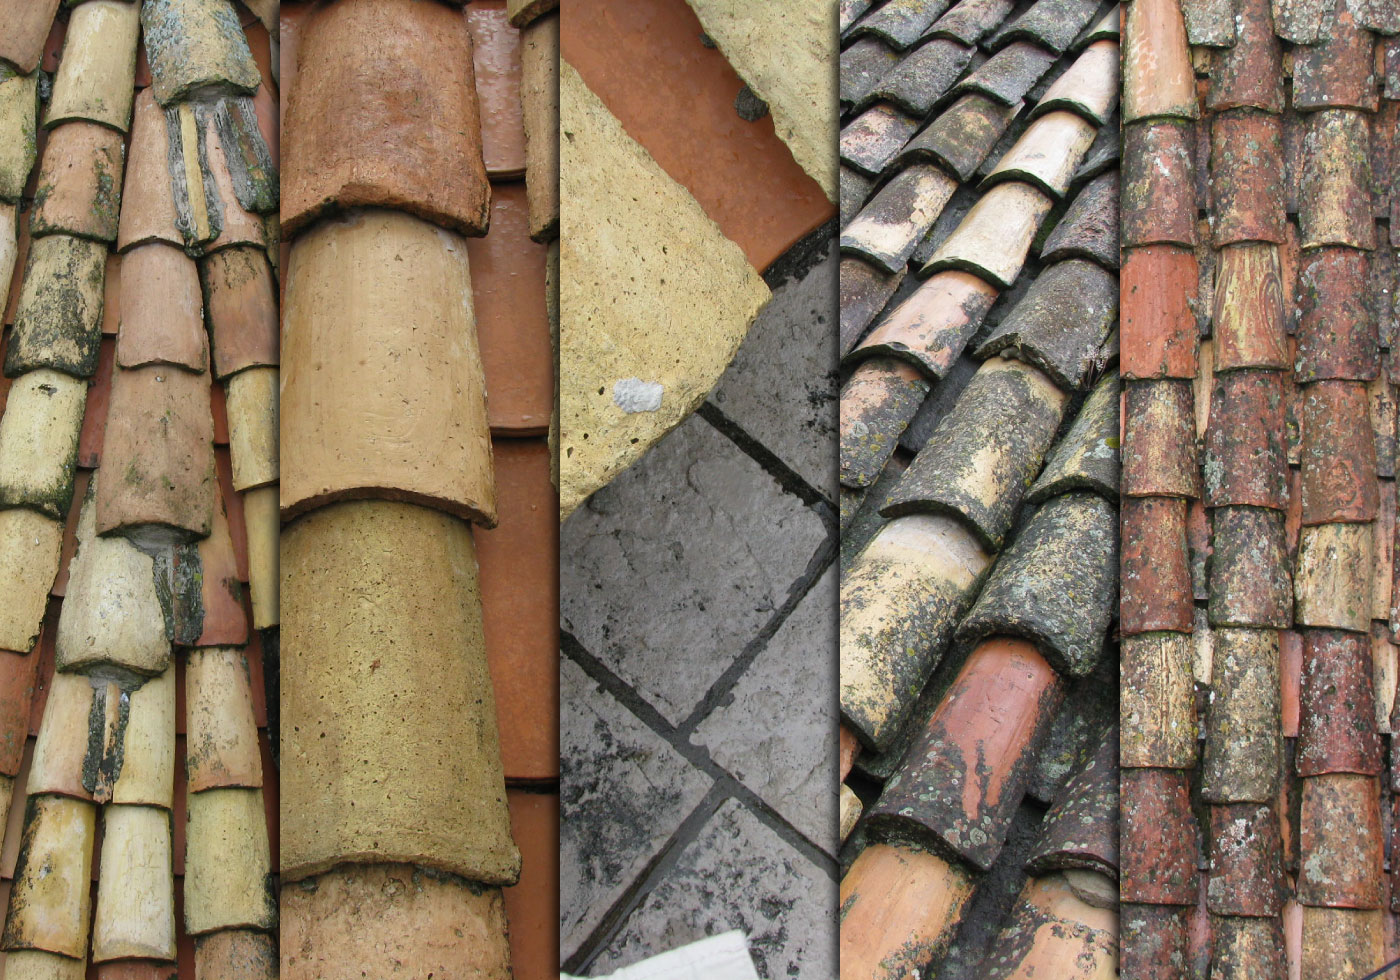 Roof Tiles In Dubrovnik Free Photoshop Brushes At Brusheezy